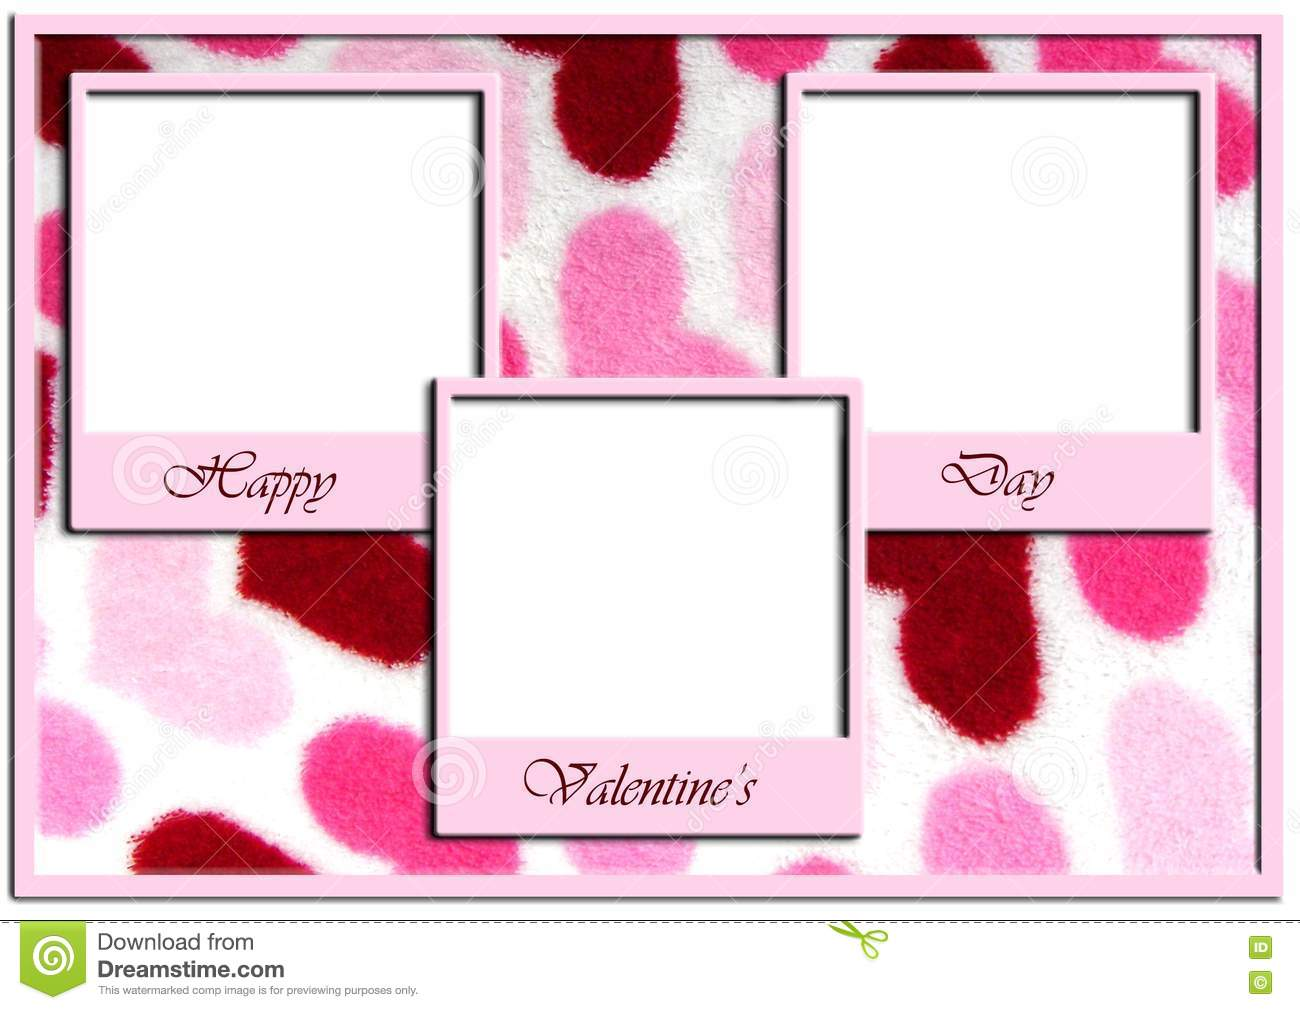 Happy Vanlentines Day frame